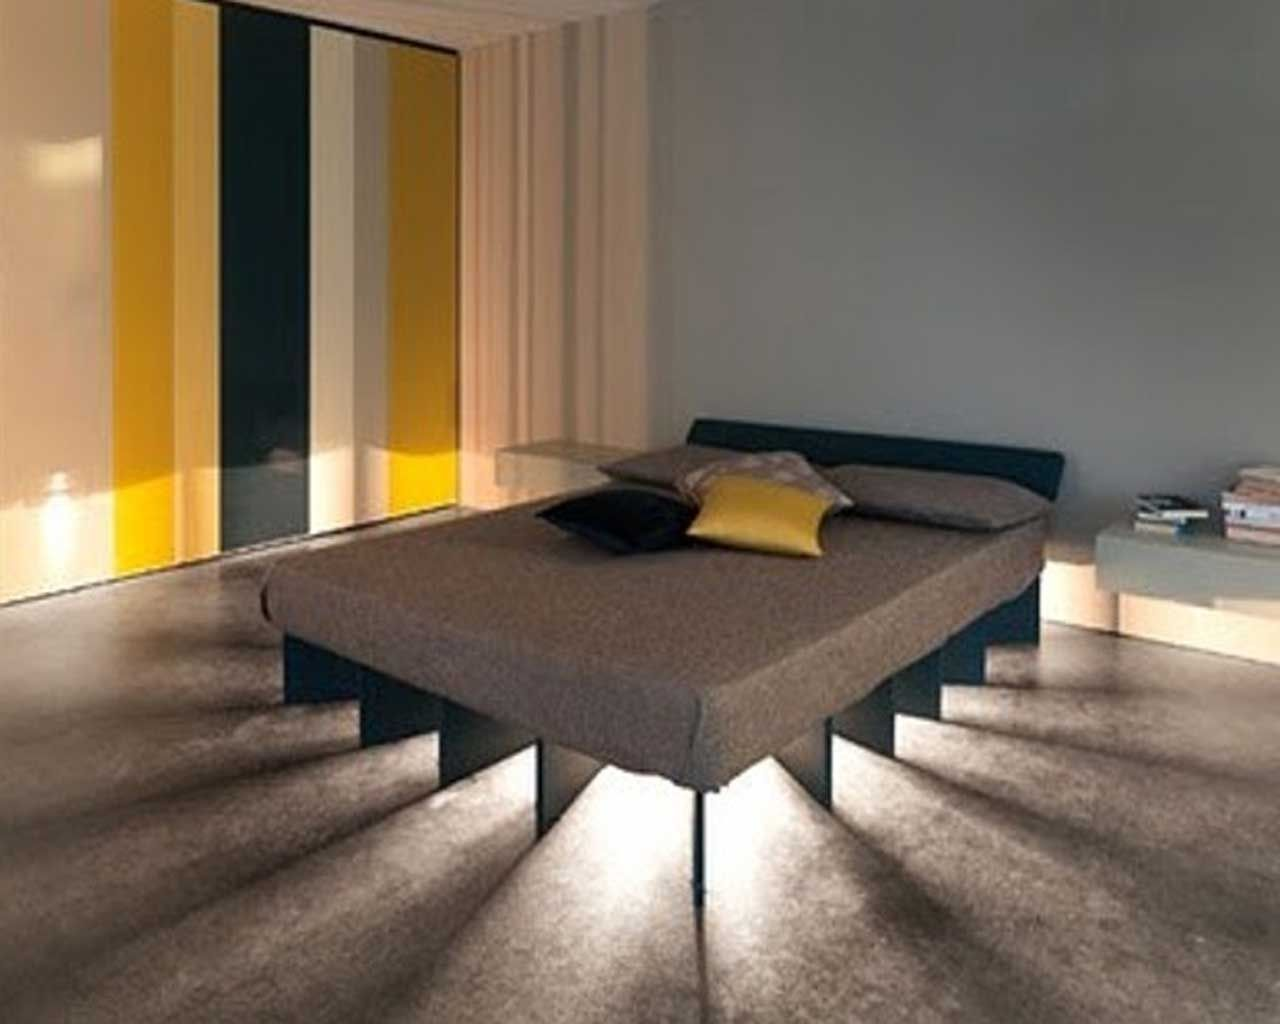 whoever thought to putting lighting under the bed clever cool bedroom lighting whoever thought - Cool Bedroom Lighting Ideas